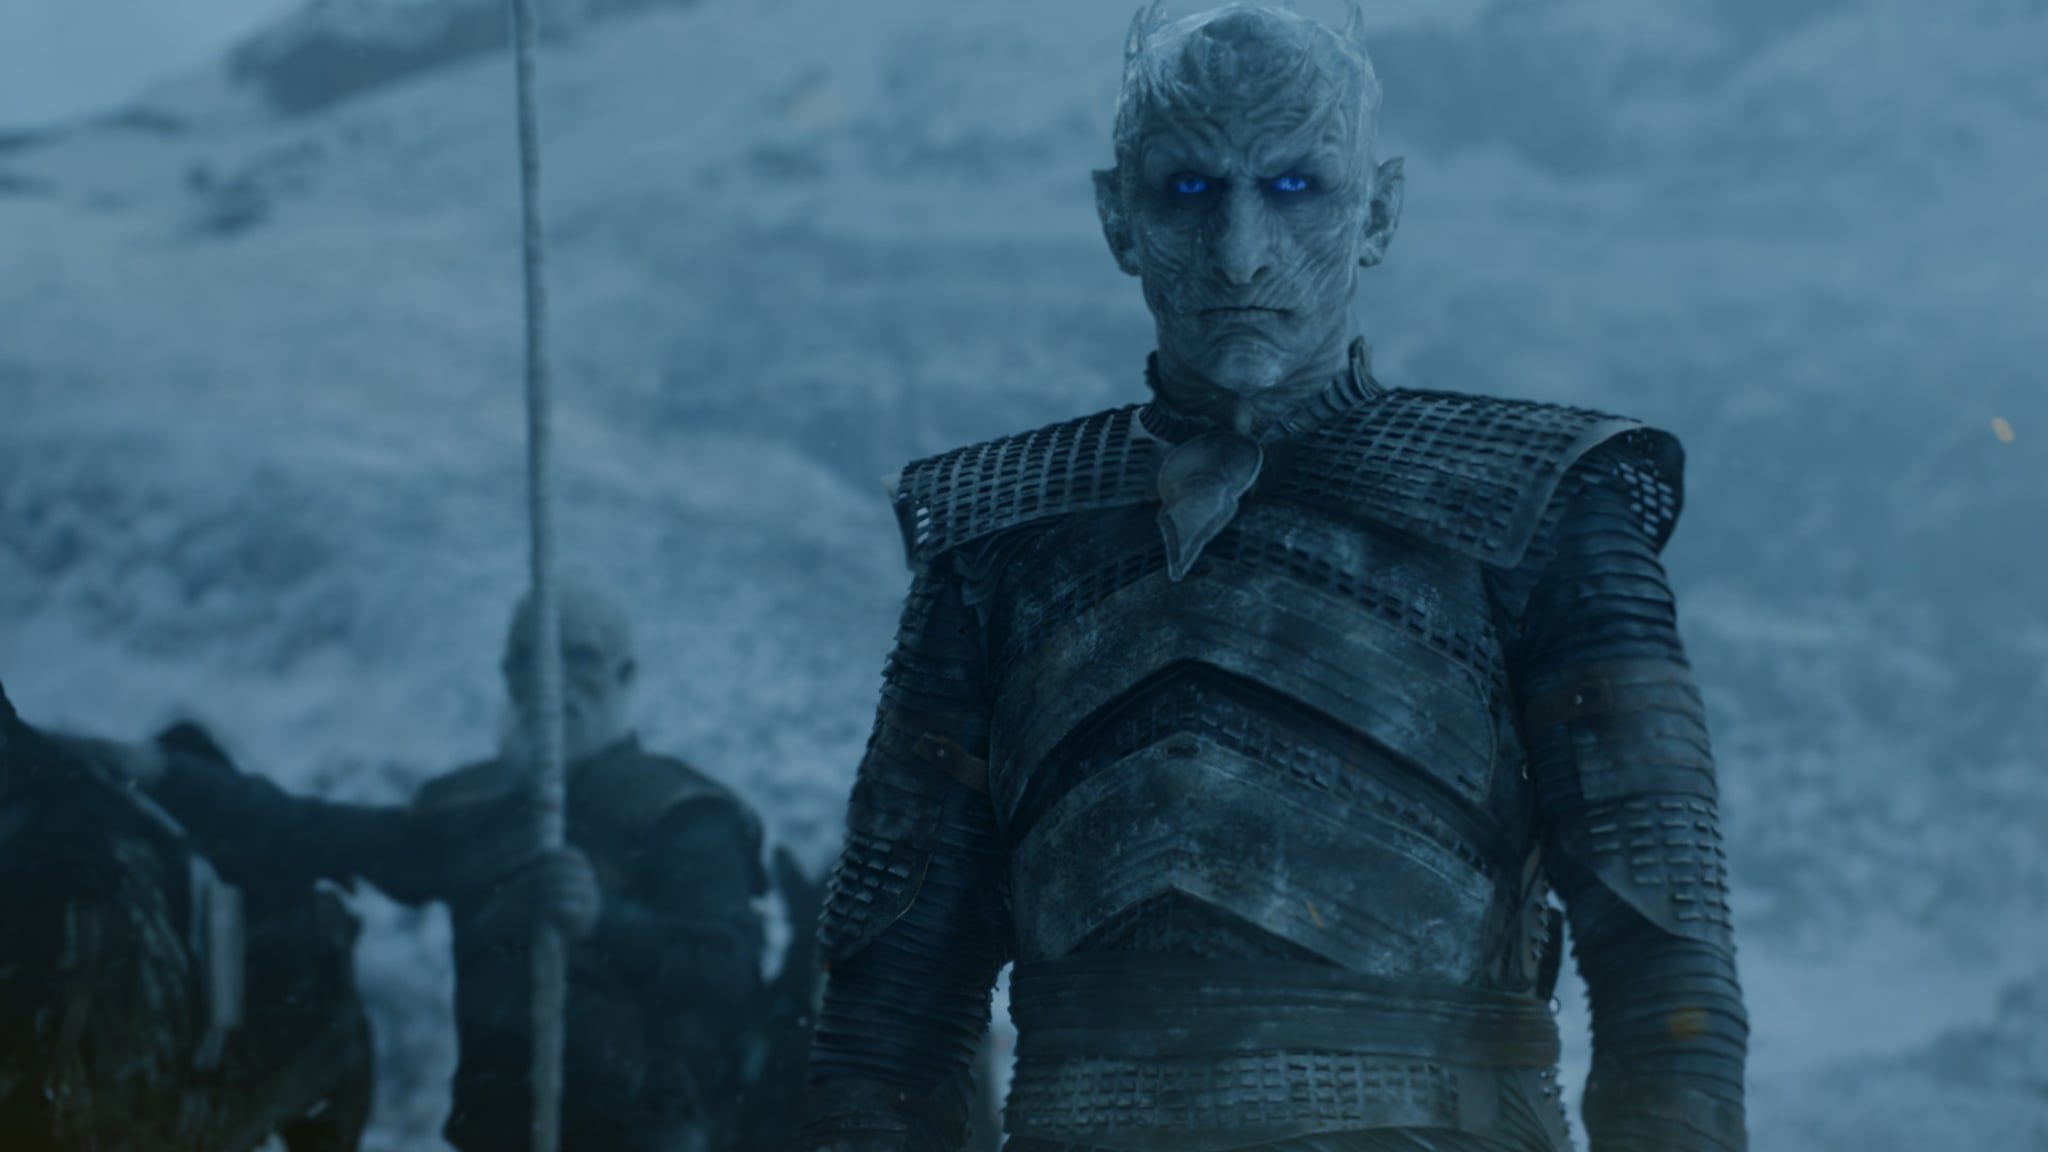 How Many White Walkers Are There Popsugar Celebrity Australia